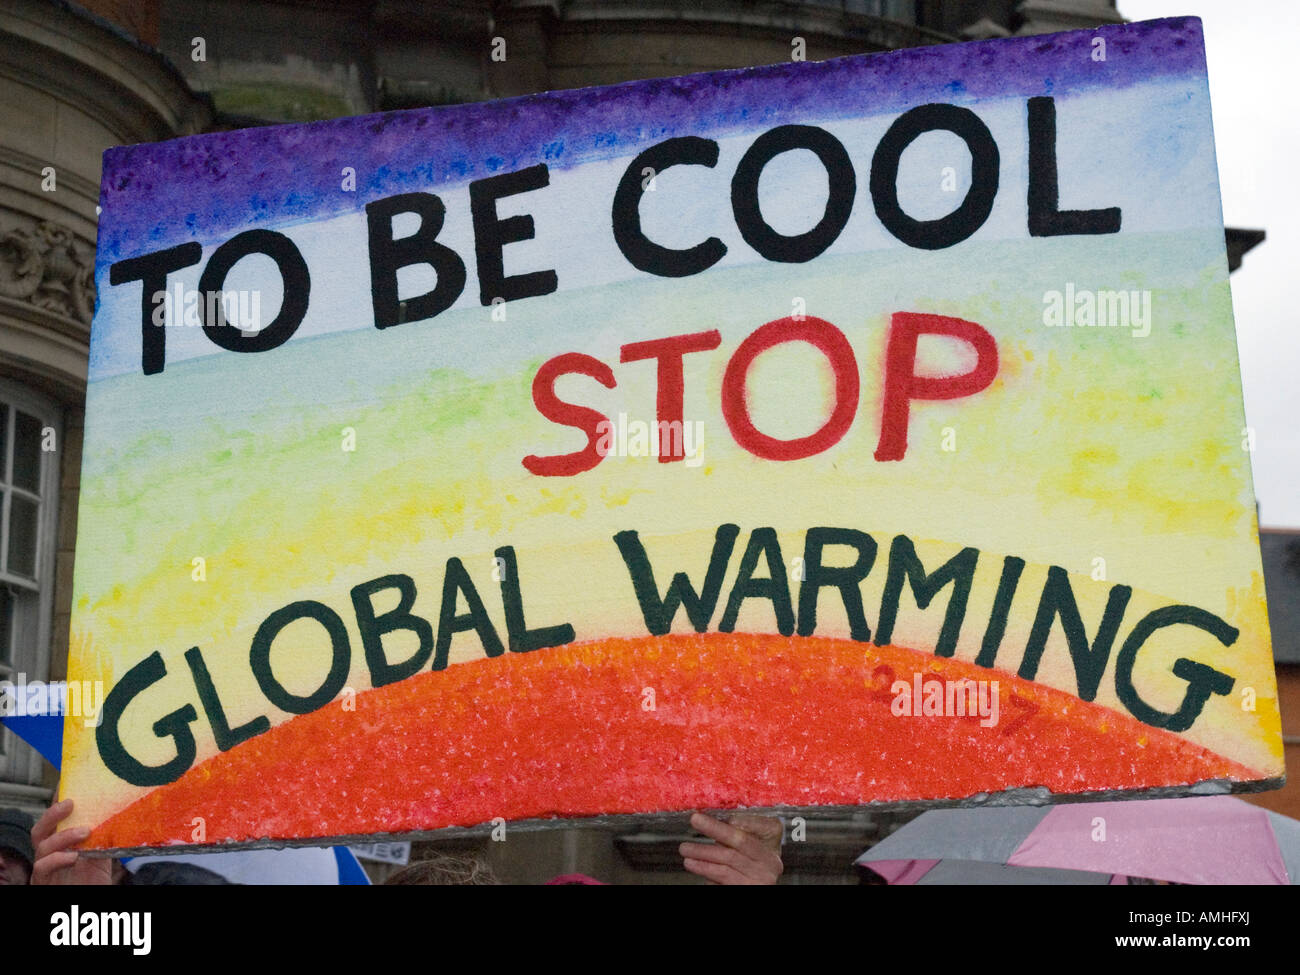 'To Be Cool Stop Global Warming' protestor s placard Climate Change march London December 8th 2007 - Stock Image